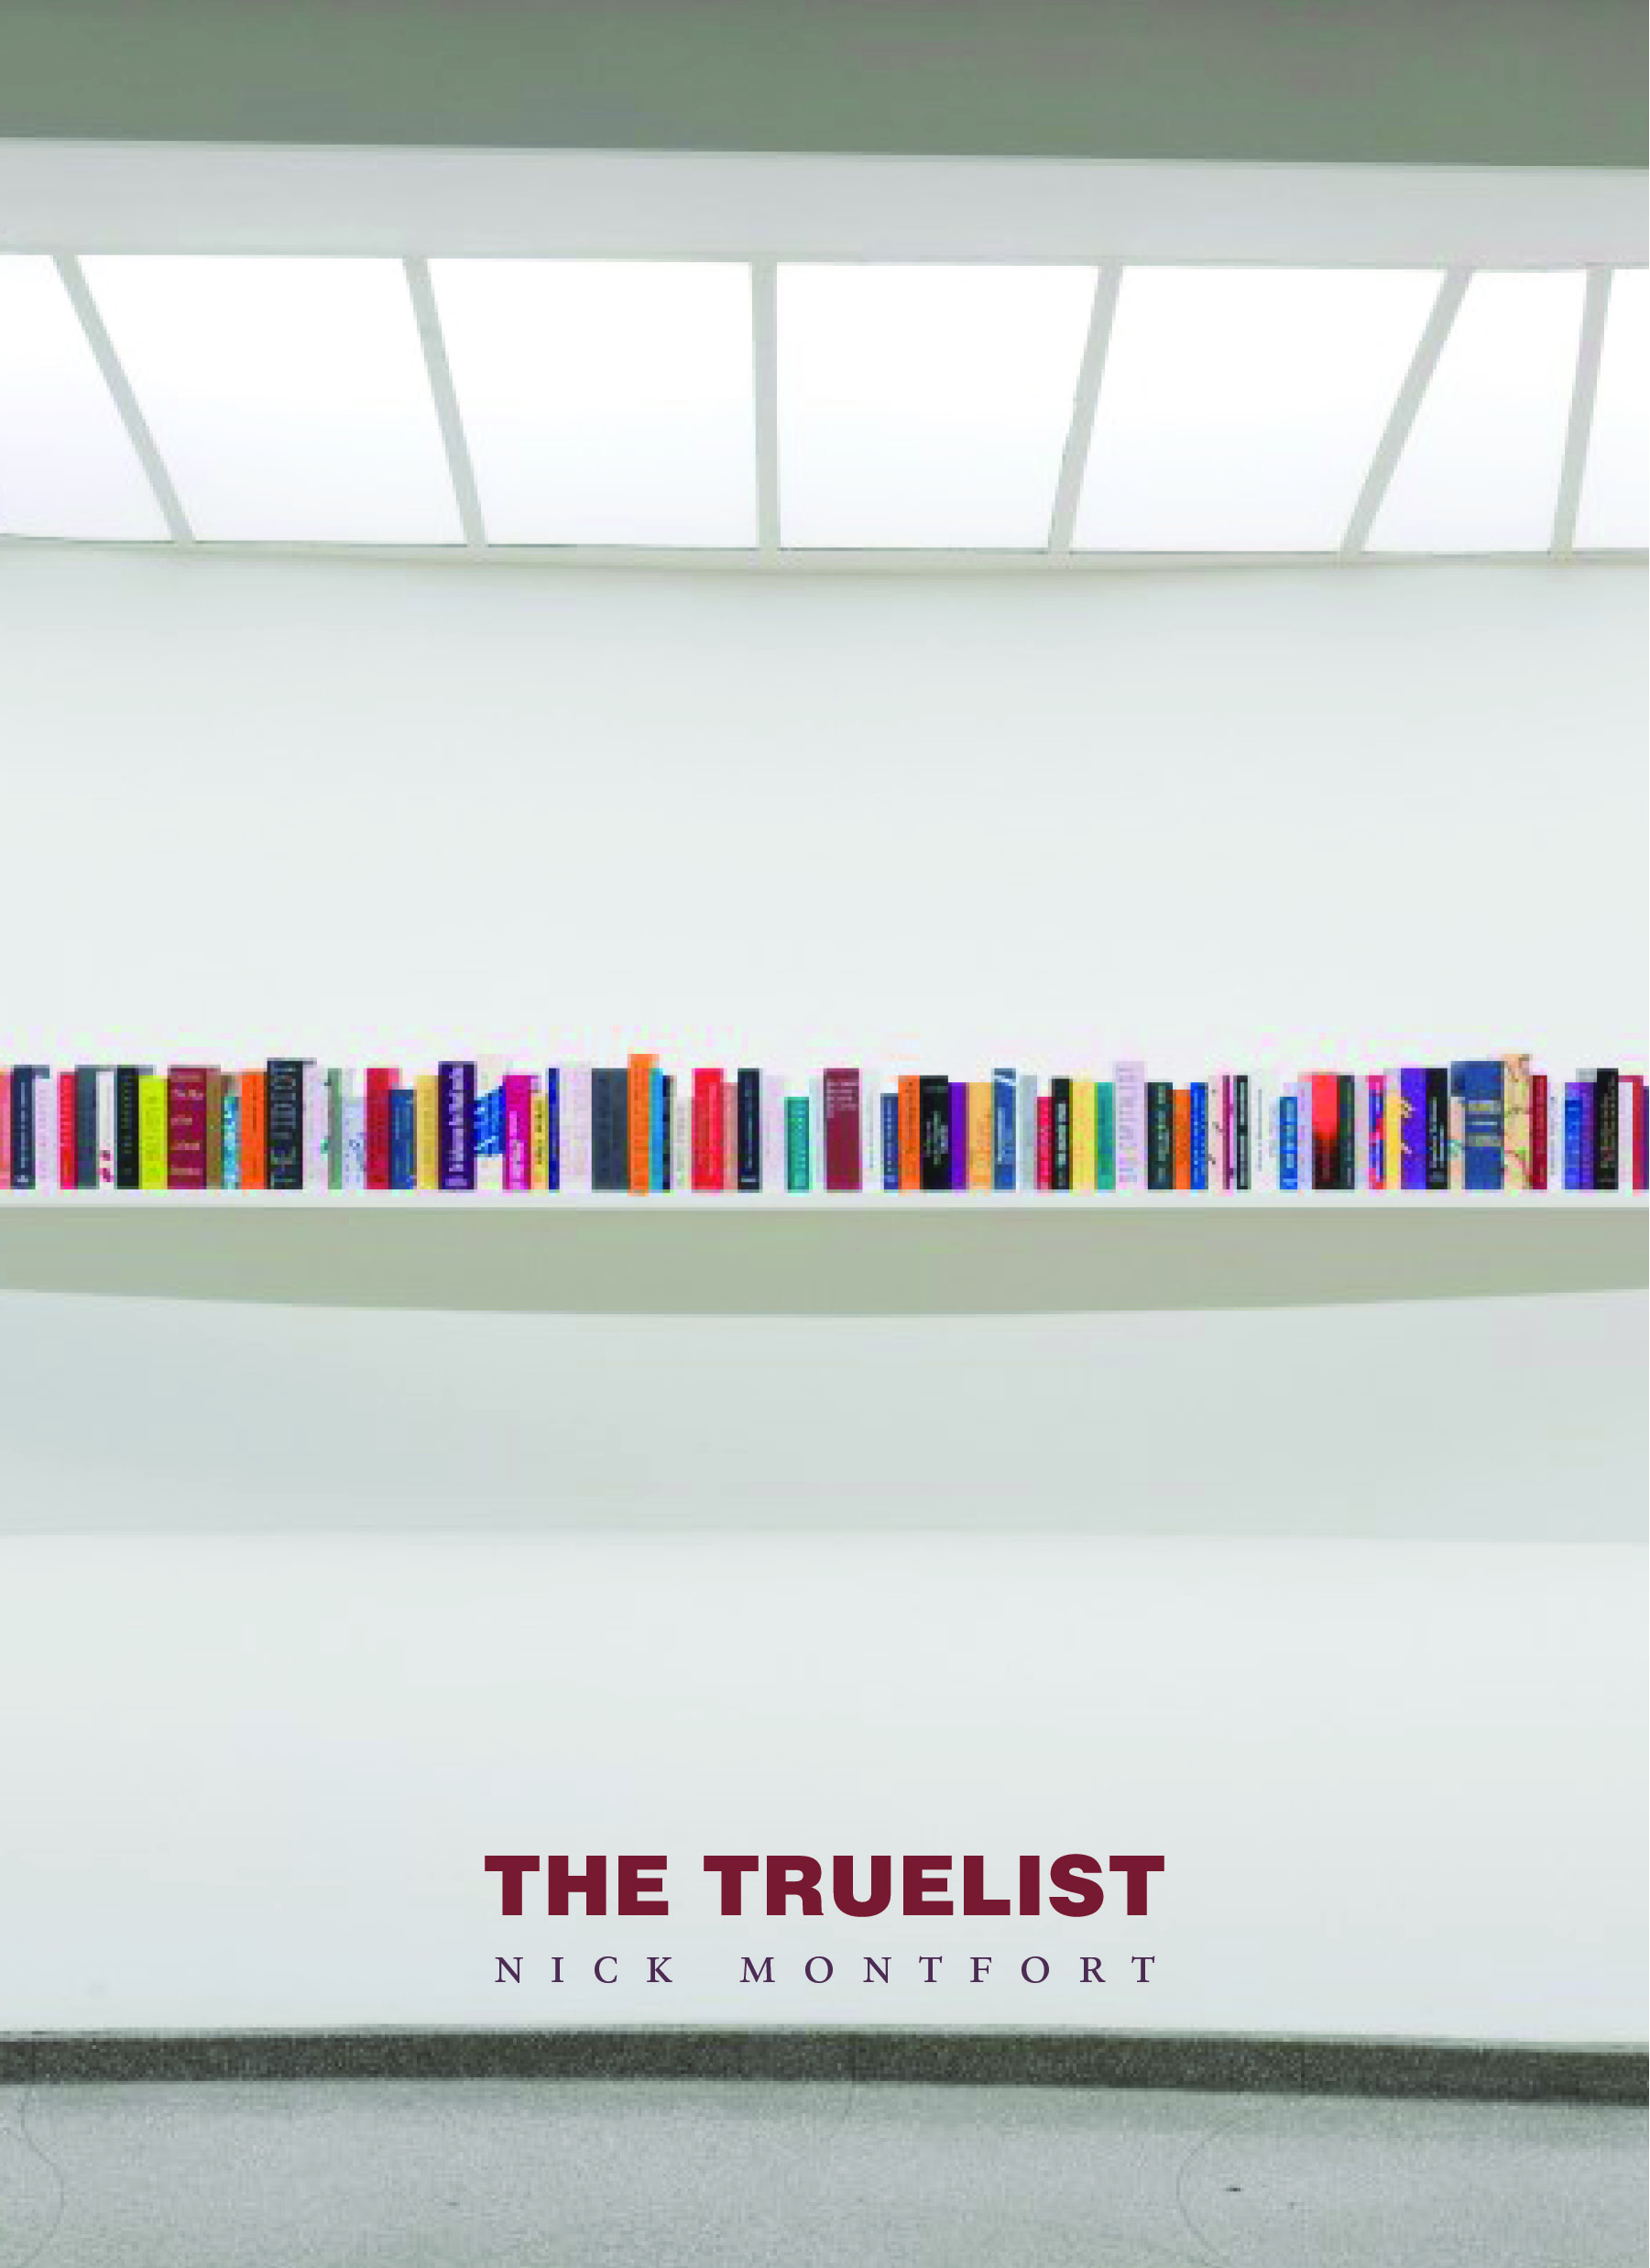 The Truelist,  Nick Montfort